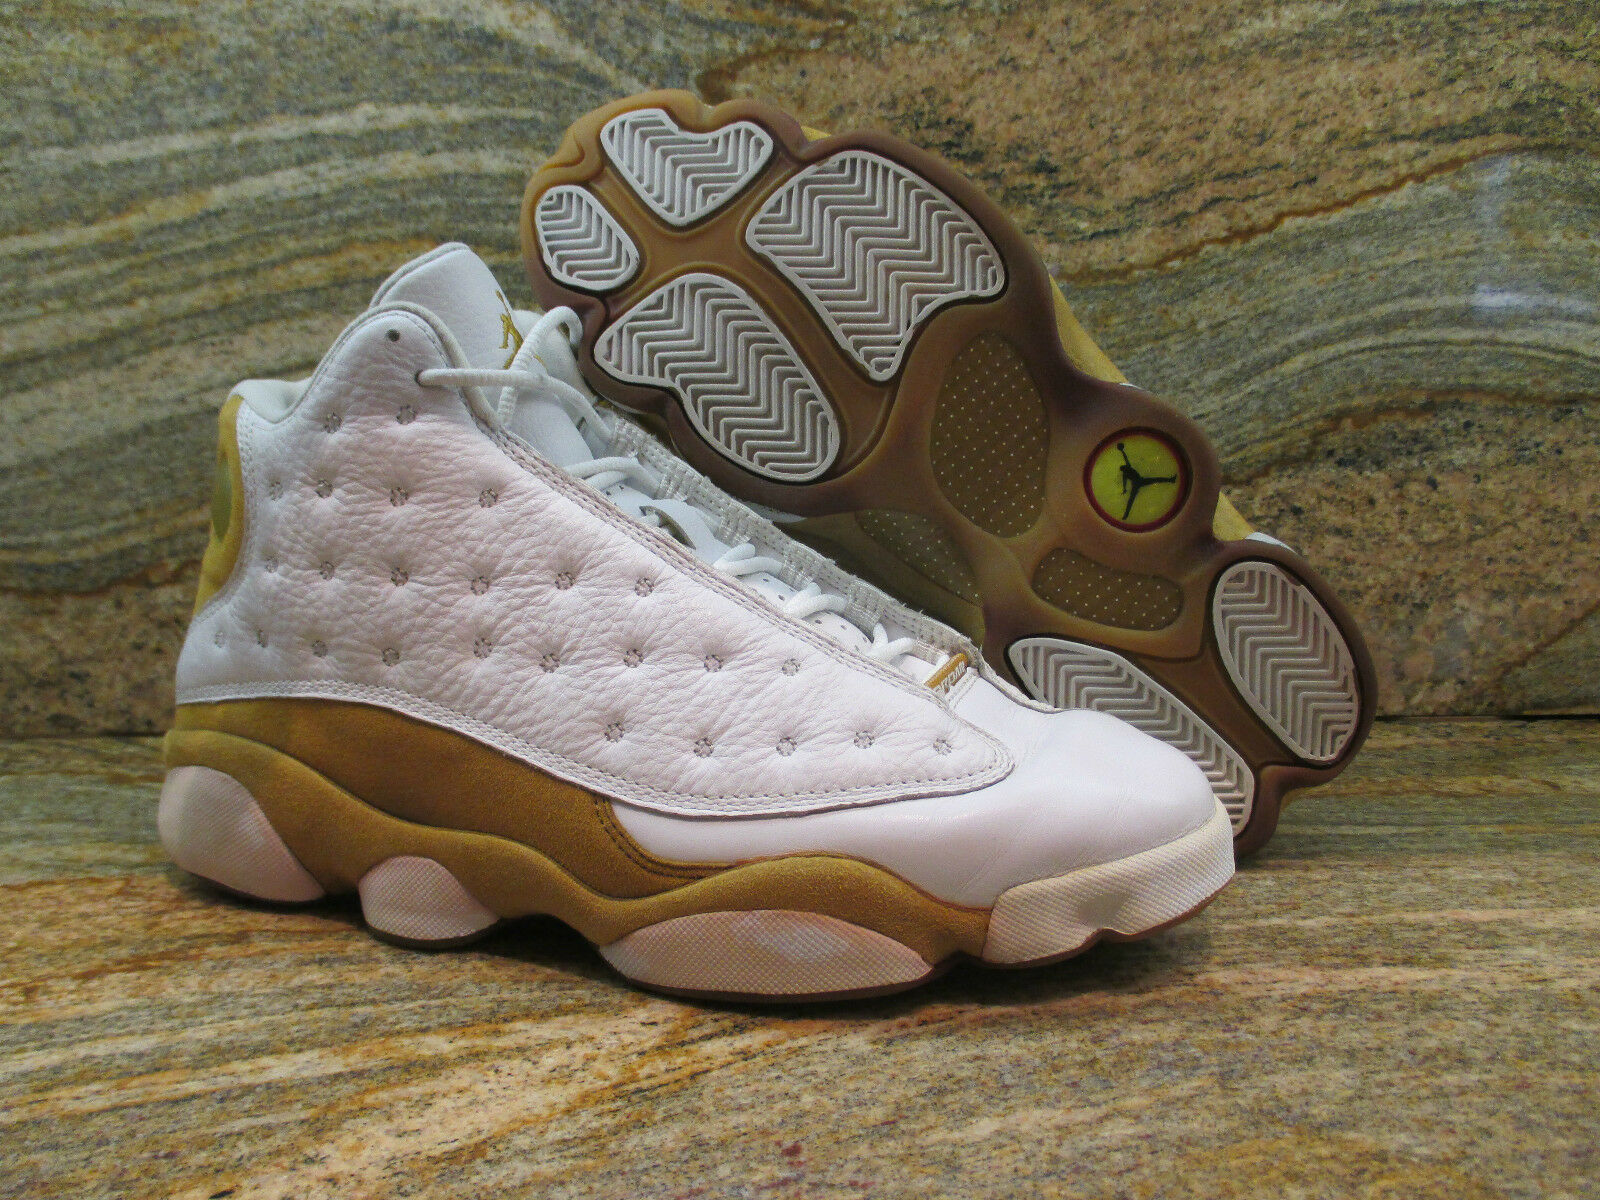 2004 Nike Air Jordan XIII 13 Retro Sample SZ 9 White Wheat OG Playoff 309259-171